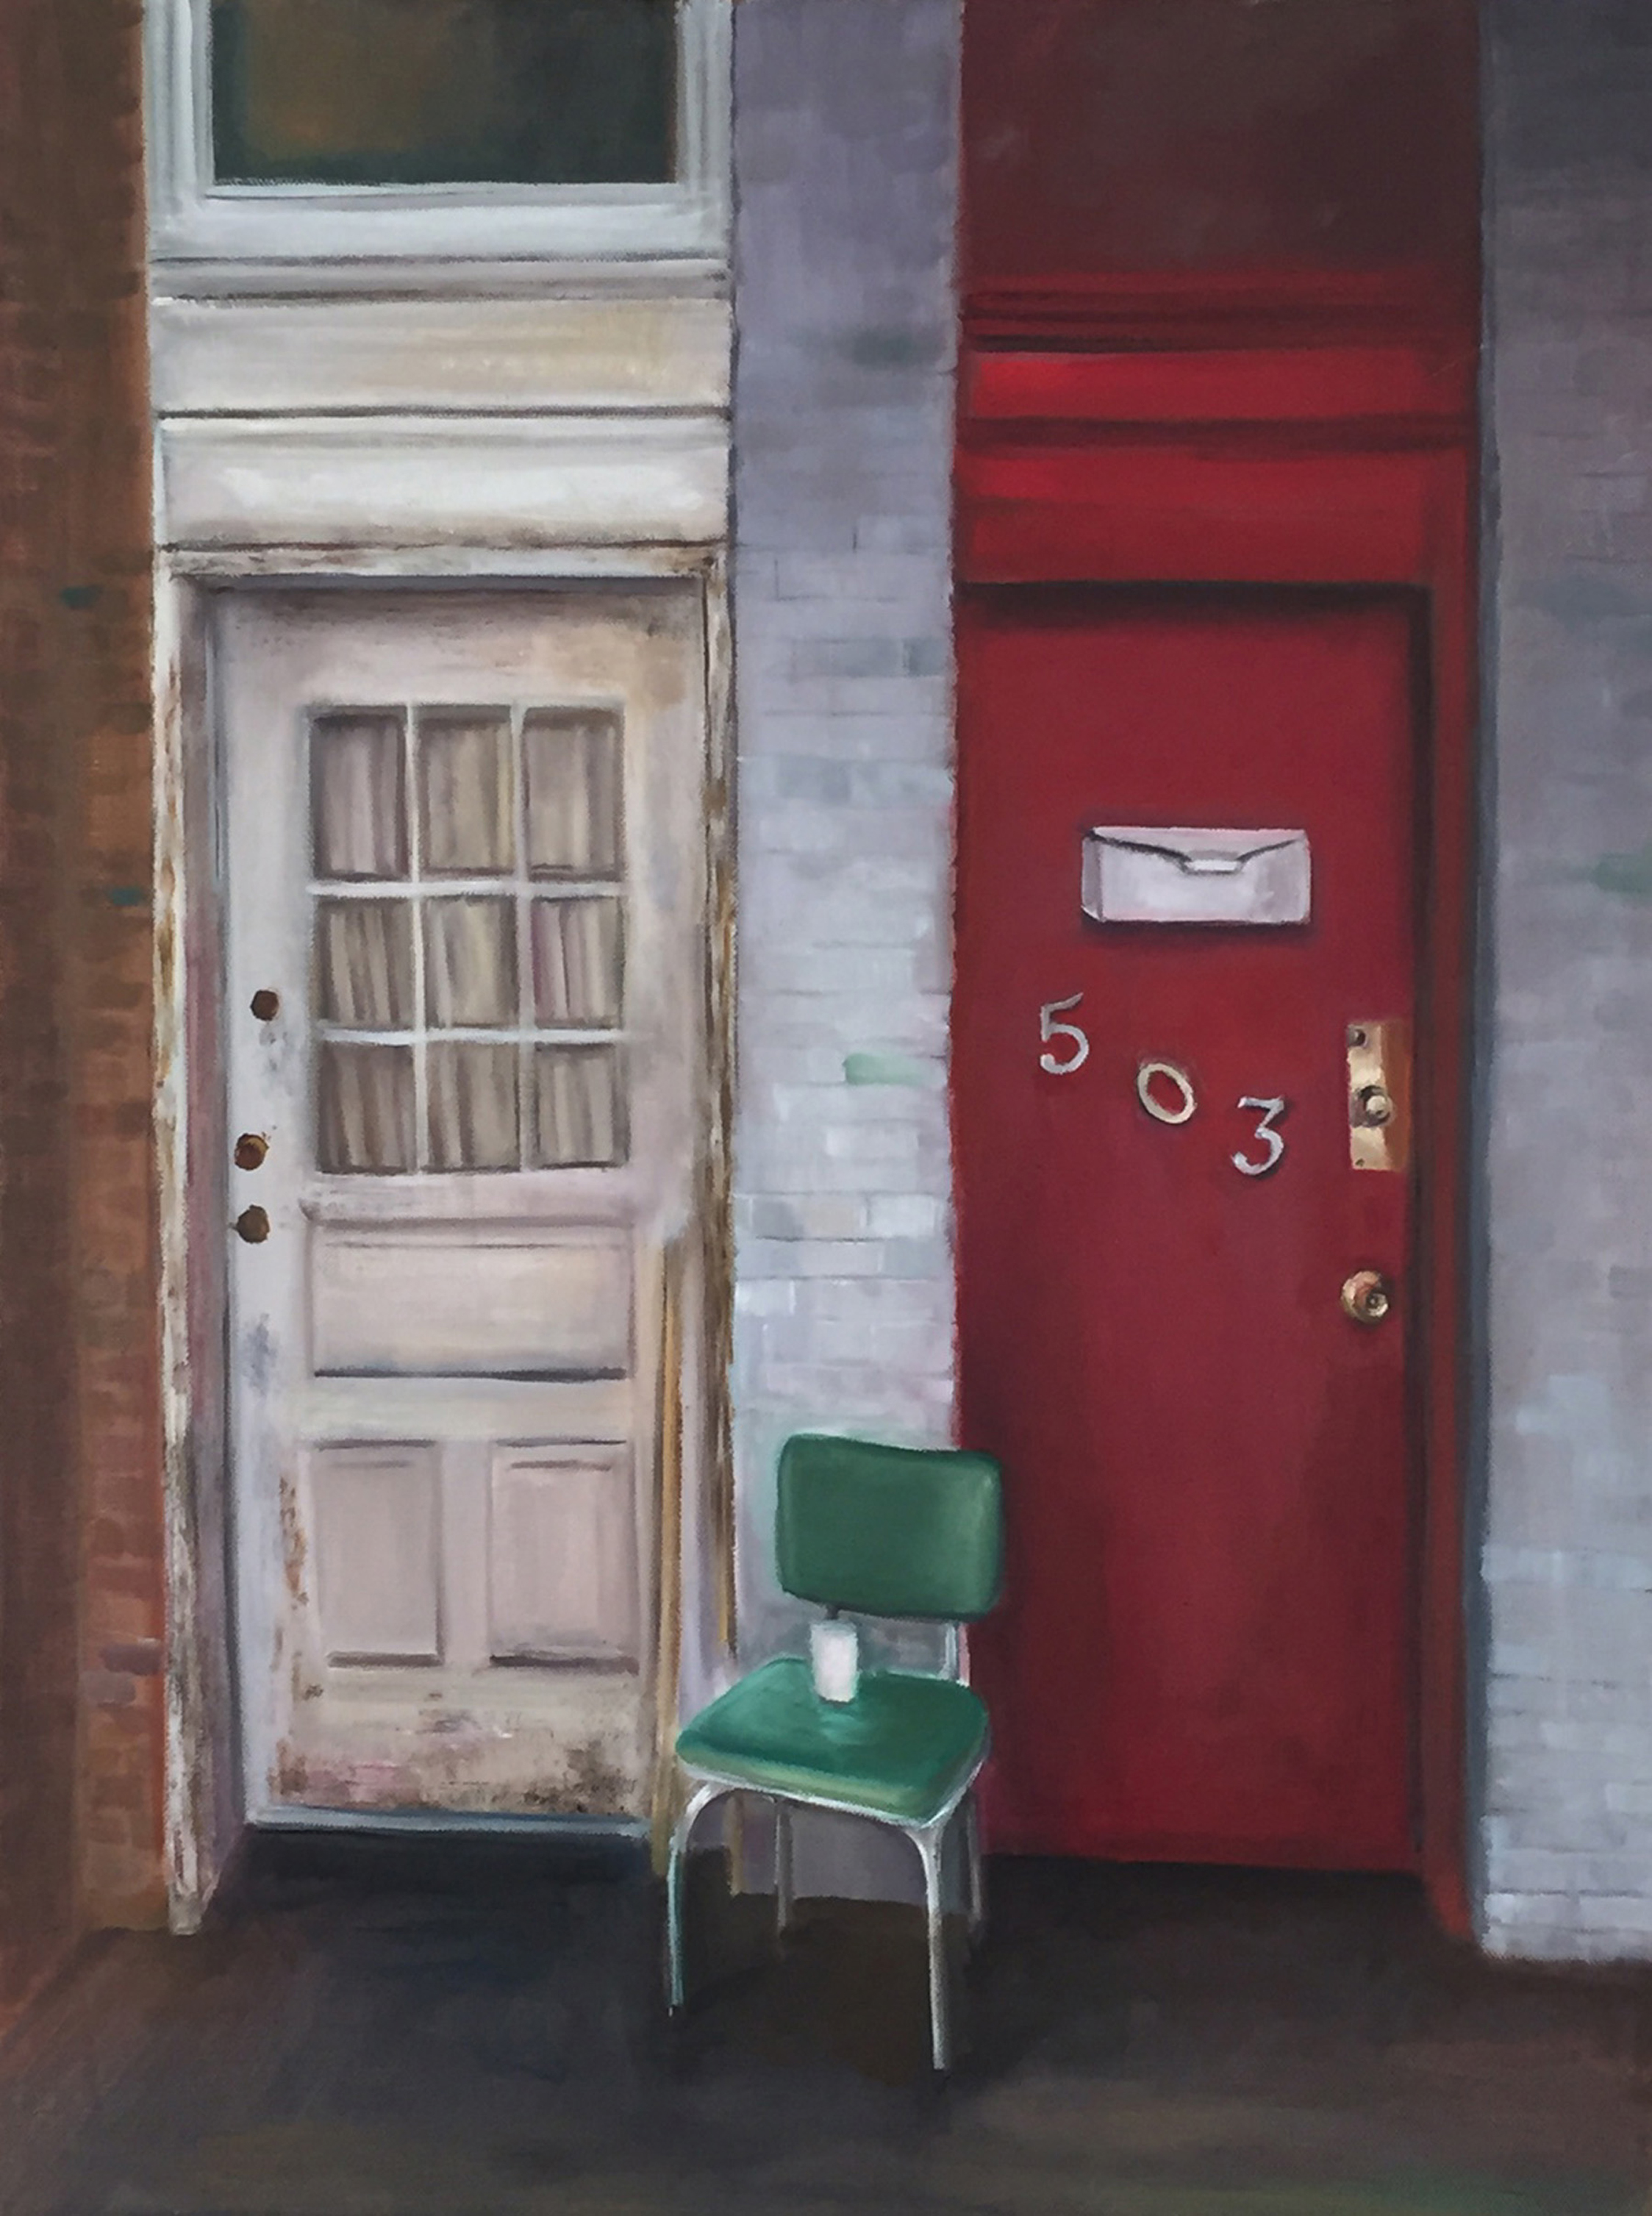 GalleryOonH-Cathy Abramson-White Door, Red Door-2016-Oil on Canvas-18x24-1900.jpg